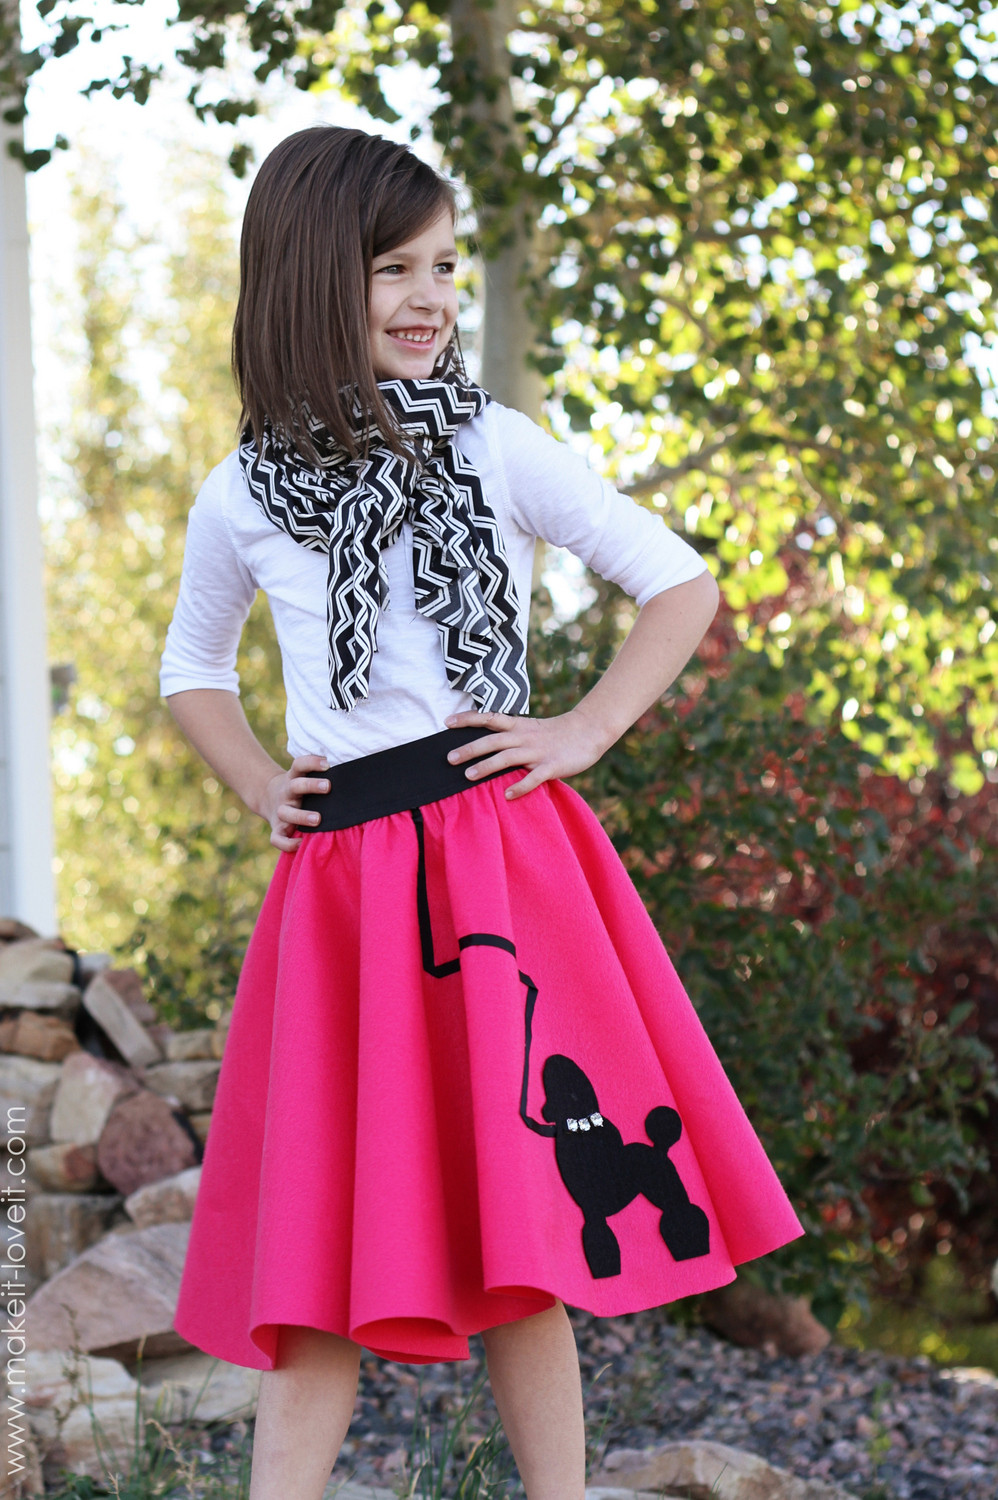 Best ideas about DIY 50S Costume . Save or Pin Halloween Costume Ideas Very Low Sew POODLE SKIRT Now.